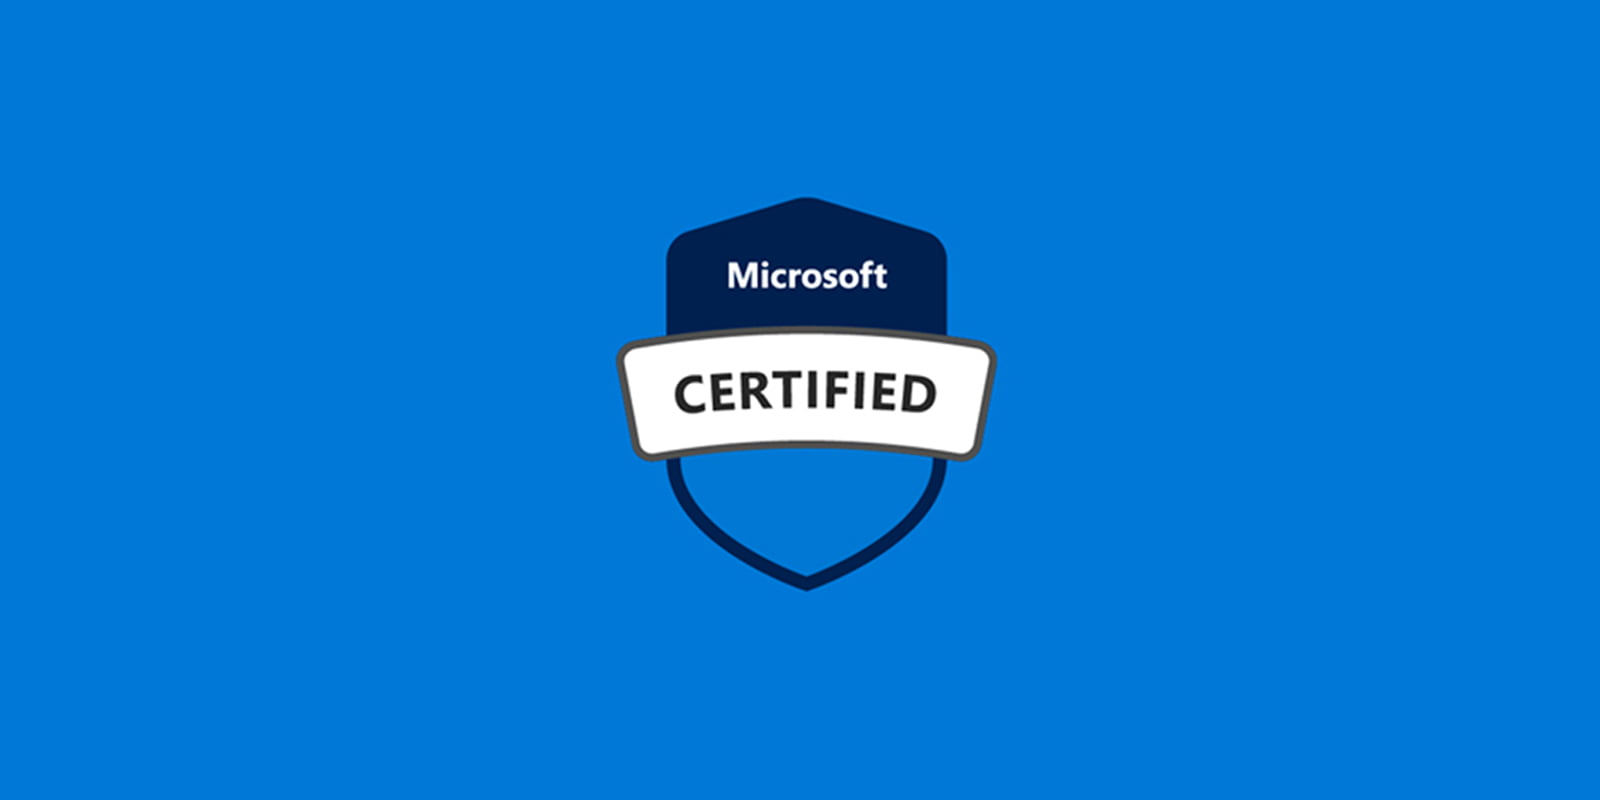 Microsoft HTML certification